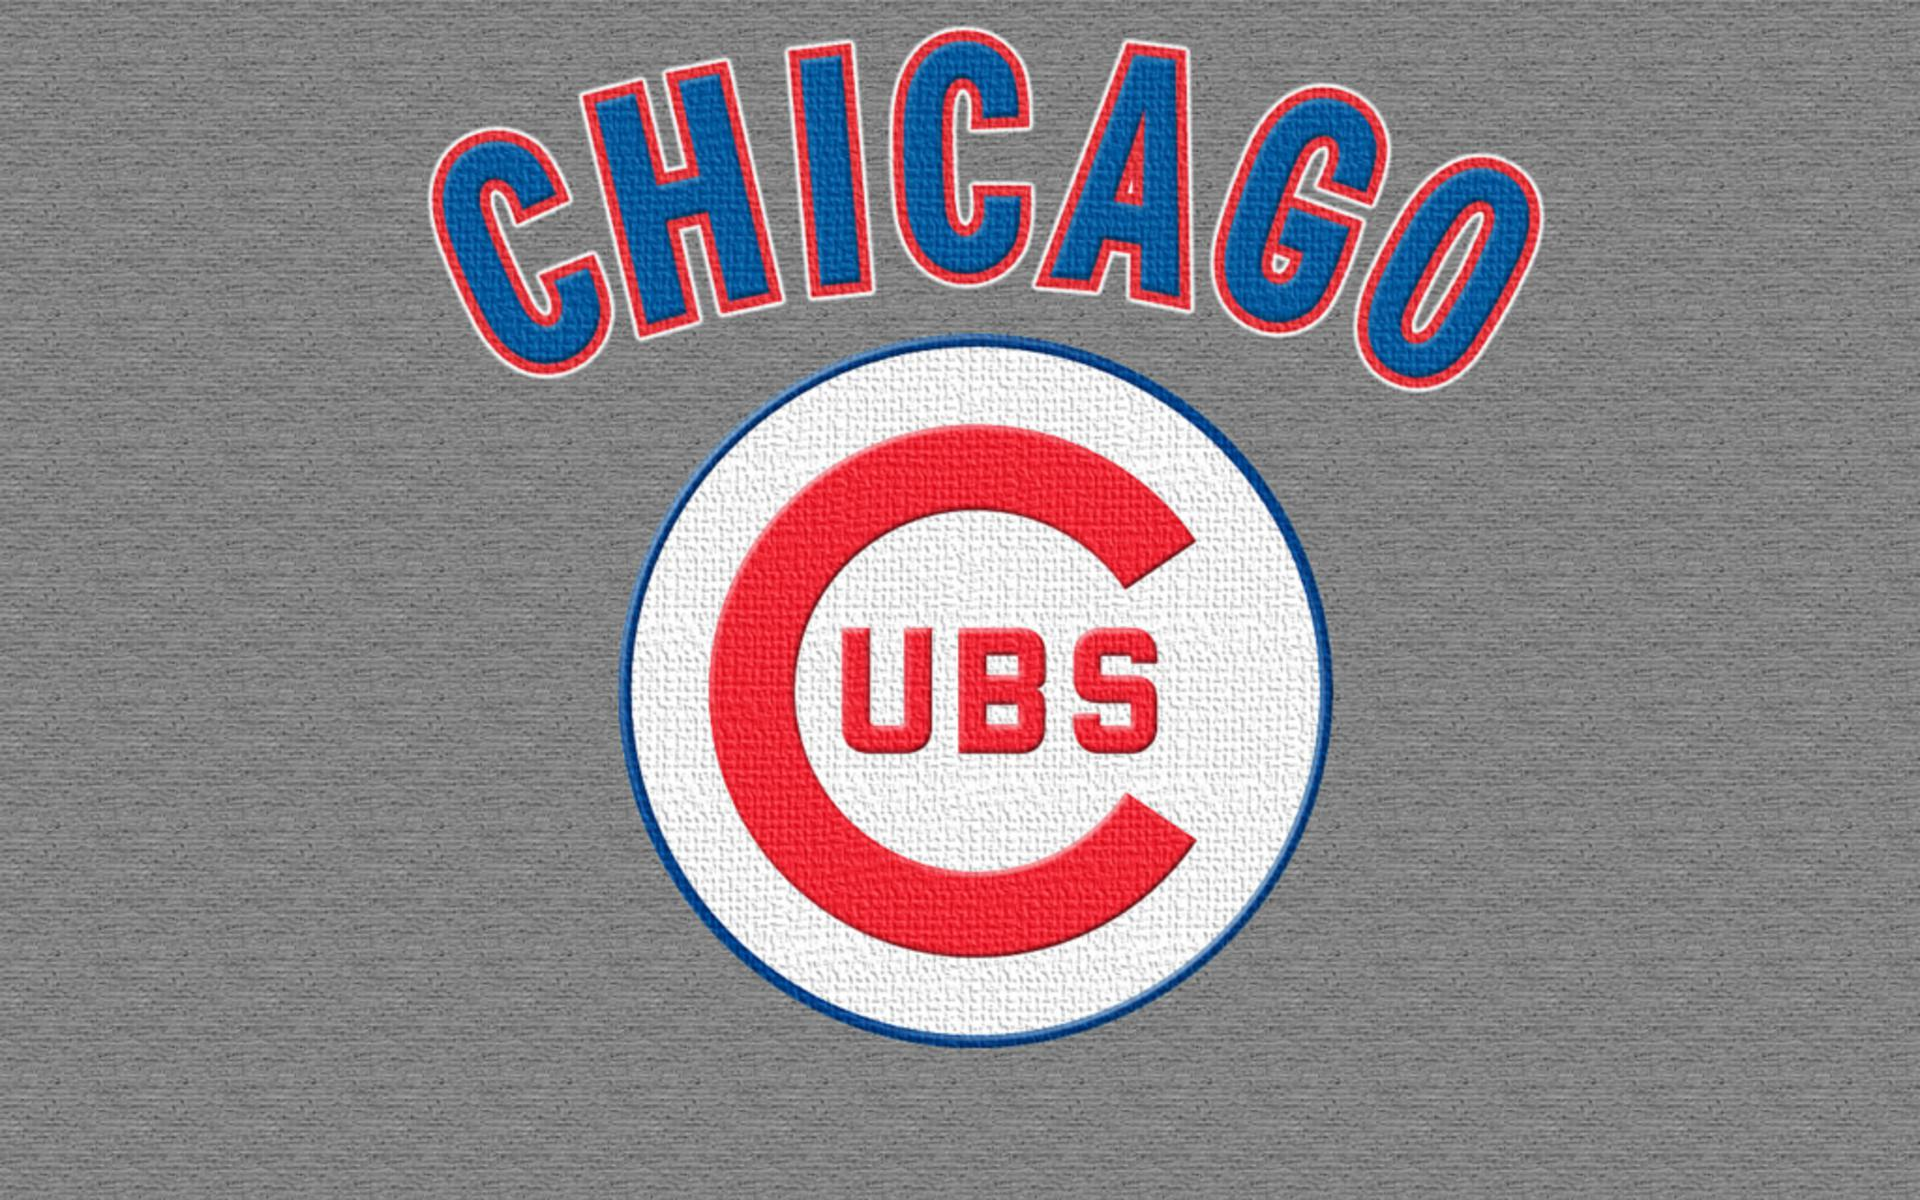 1920x1200 - Chicago Cubs Wallpapers 16